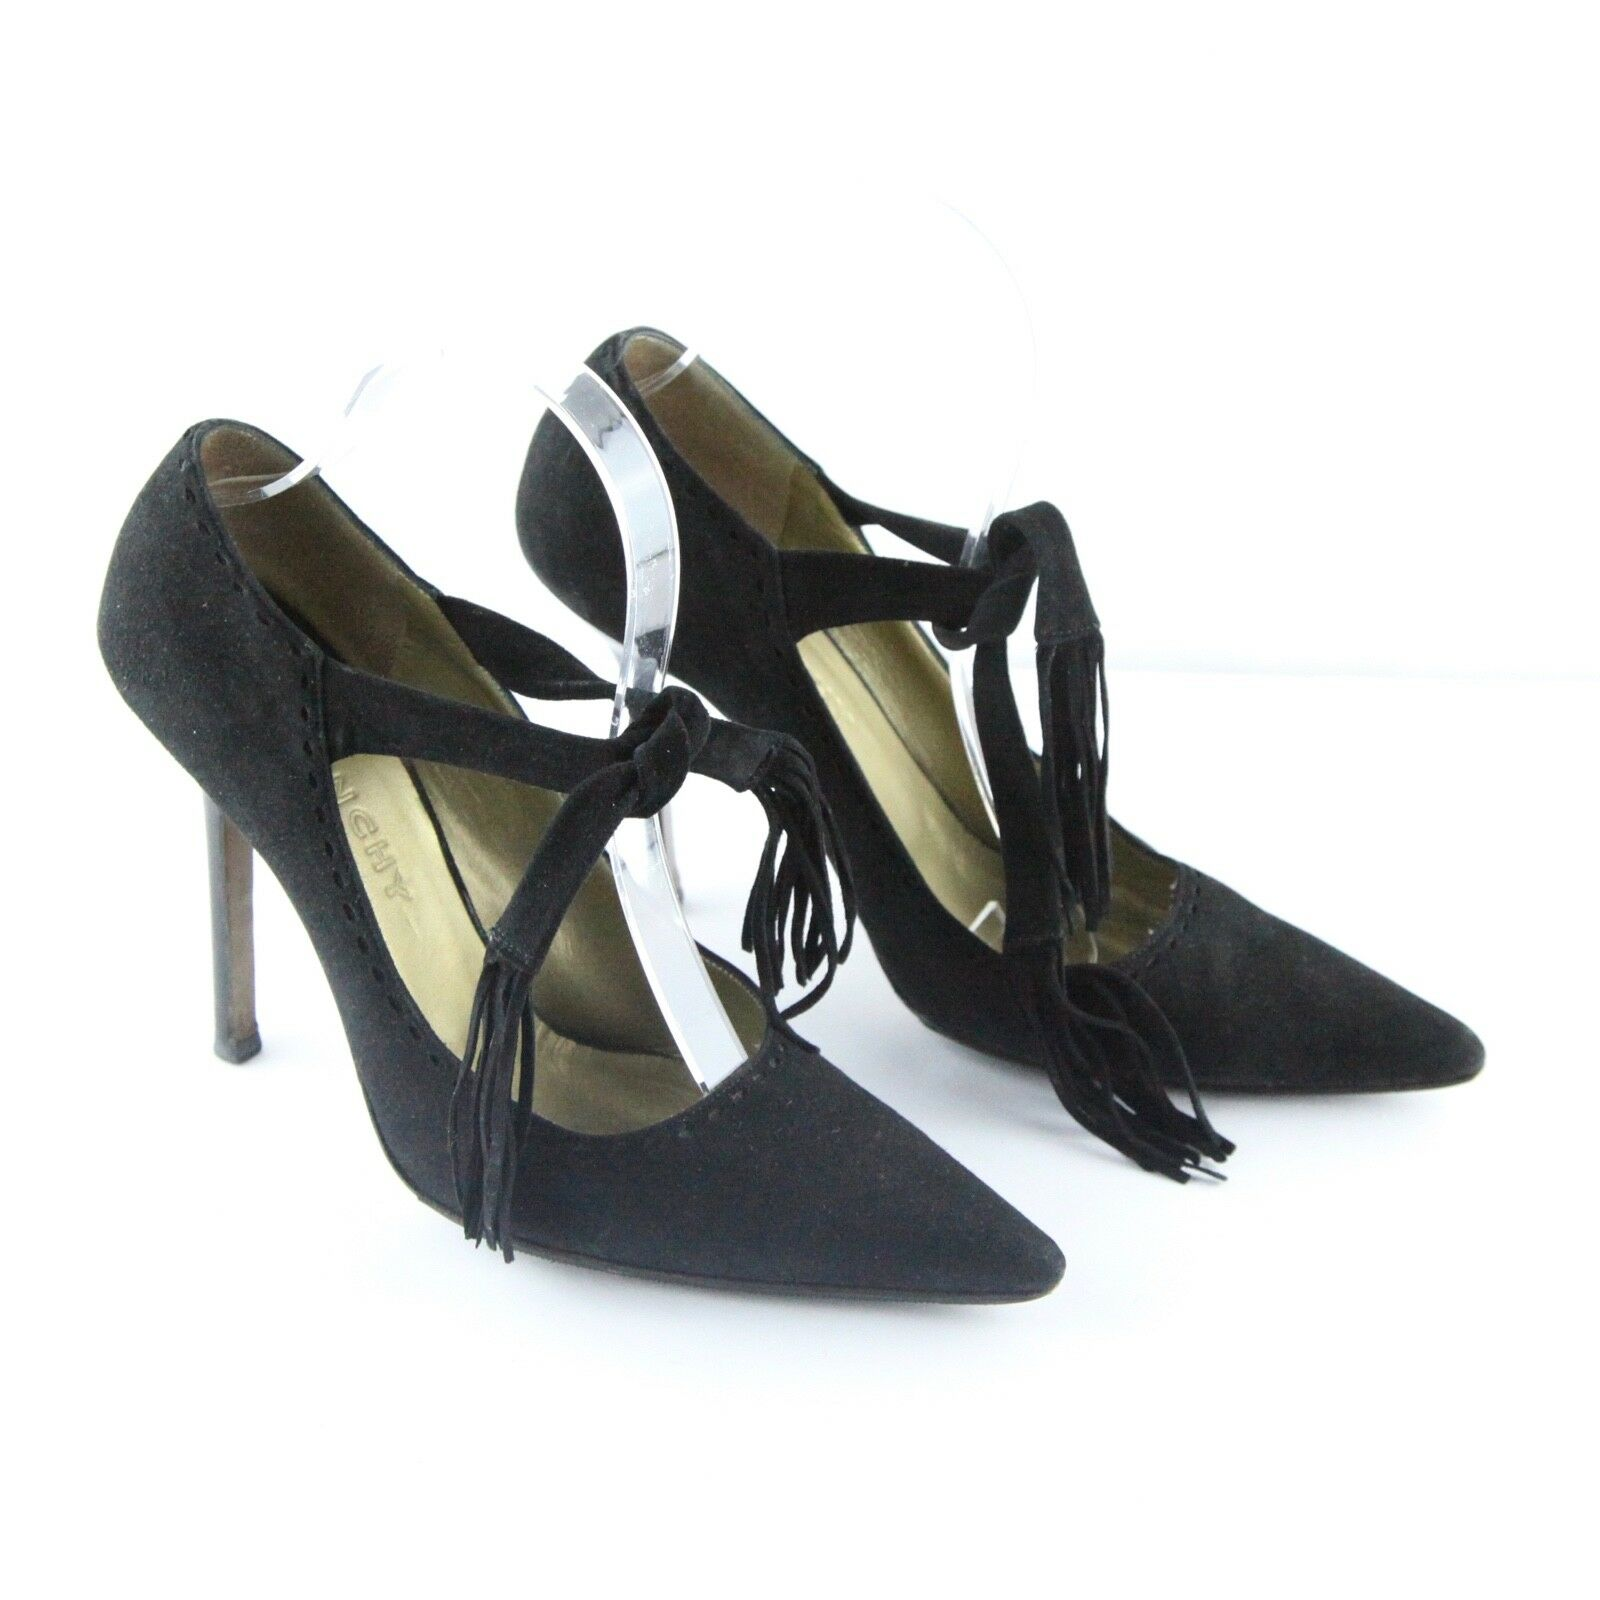 Givenchy Black Suede Mary Jane Tie Front Tassel Stiletto Heels 38 1 2  Pump